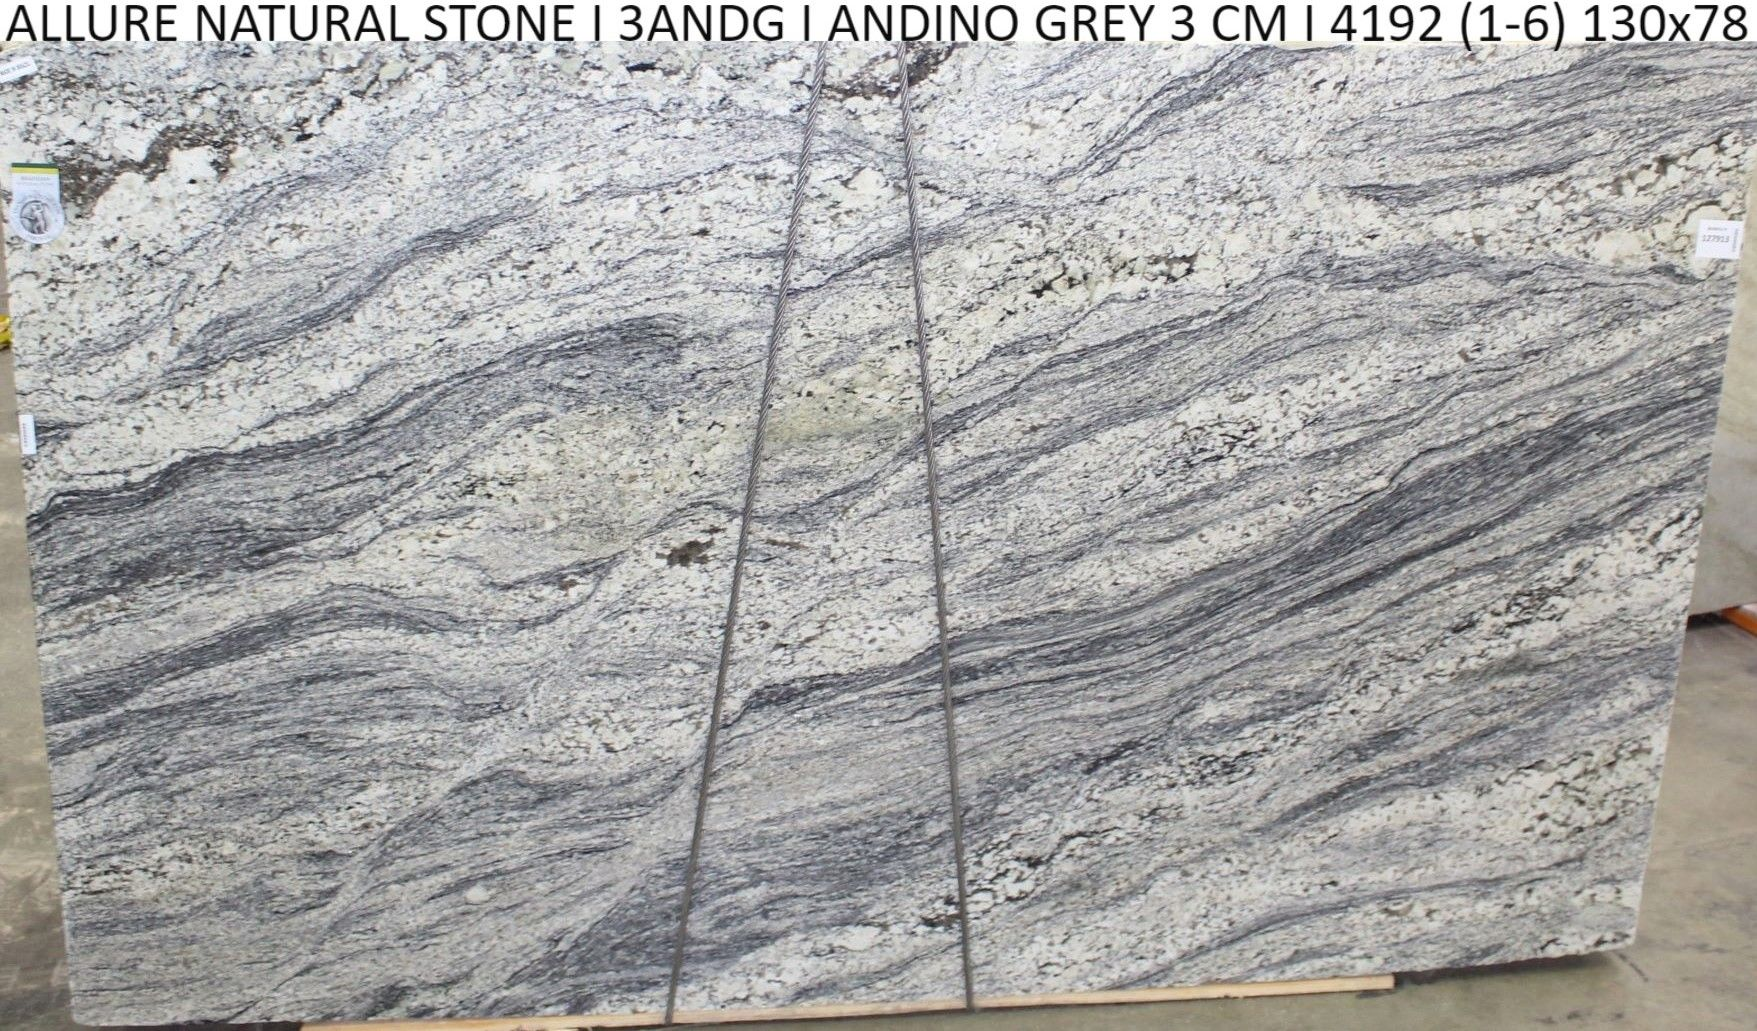 Andino Grey Granite By Allure Natural Stone Grey Granite Natural Stones Quartzite